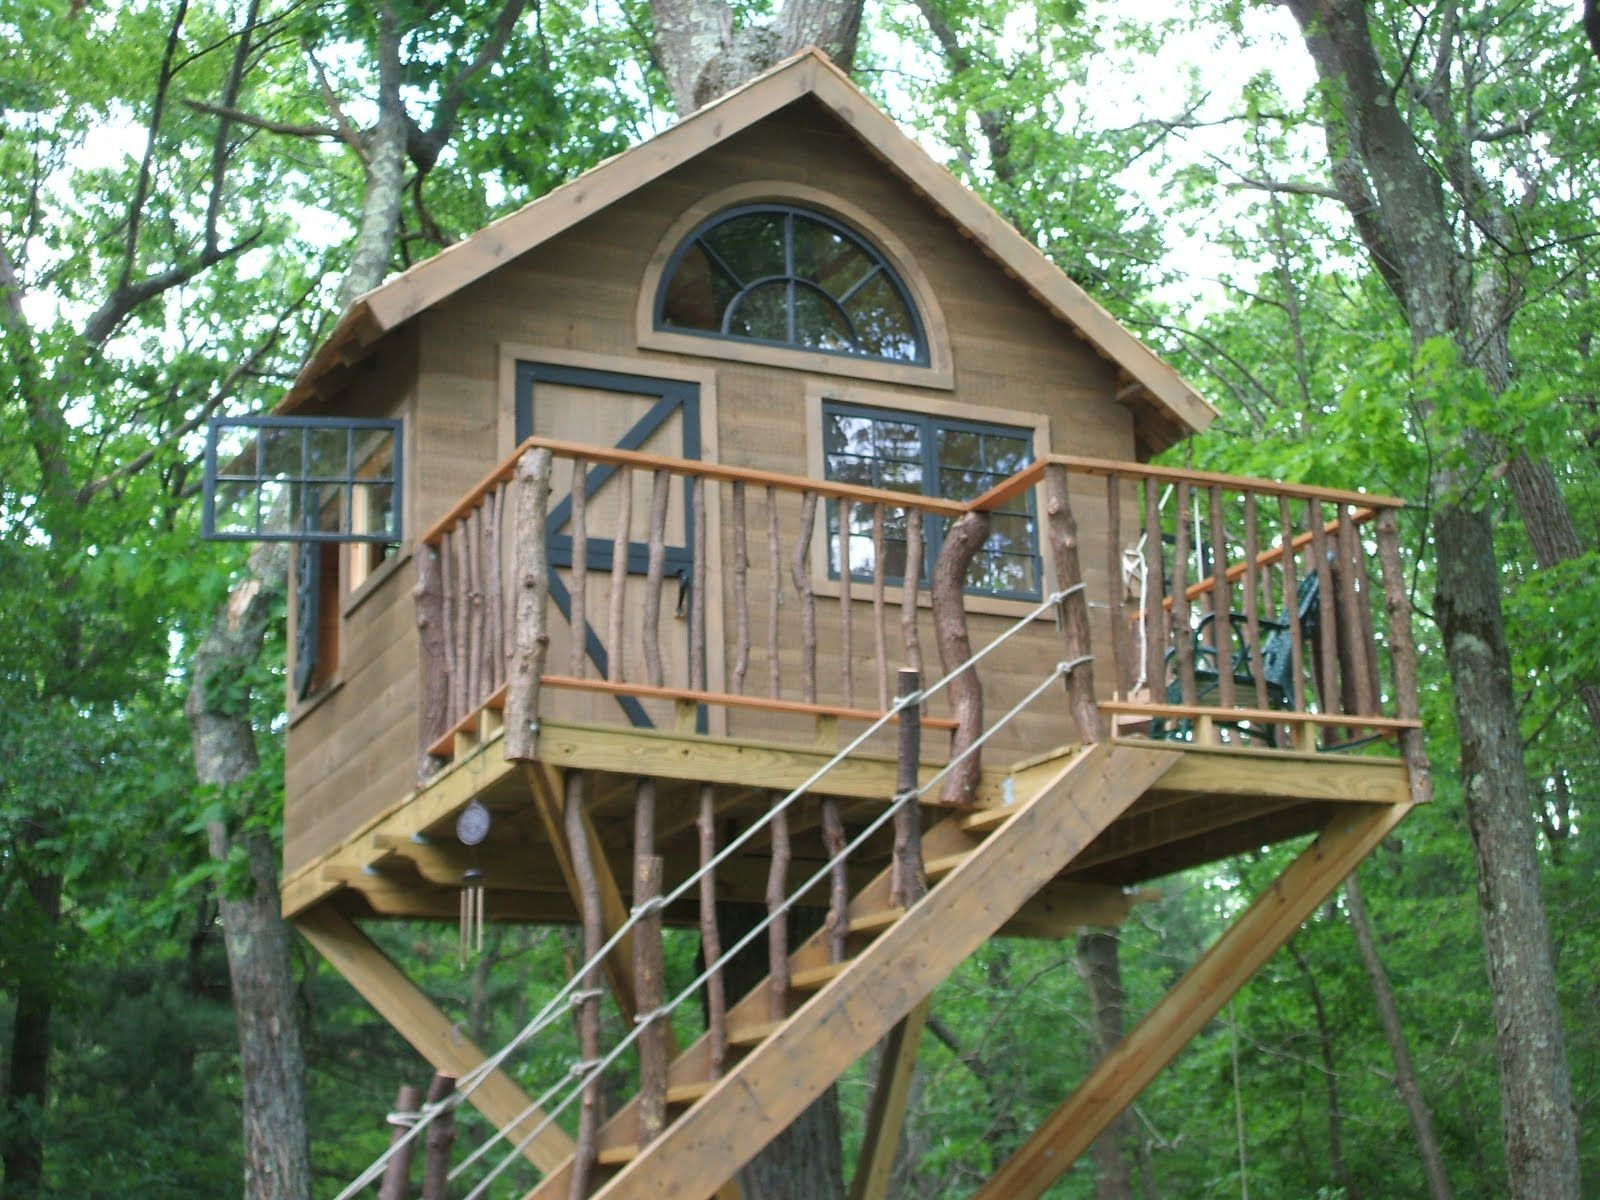 Simple Tree House Plans For Kids tree house plans | pictures of tree houses and play houses from